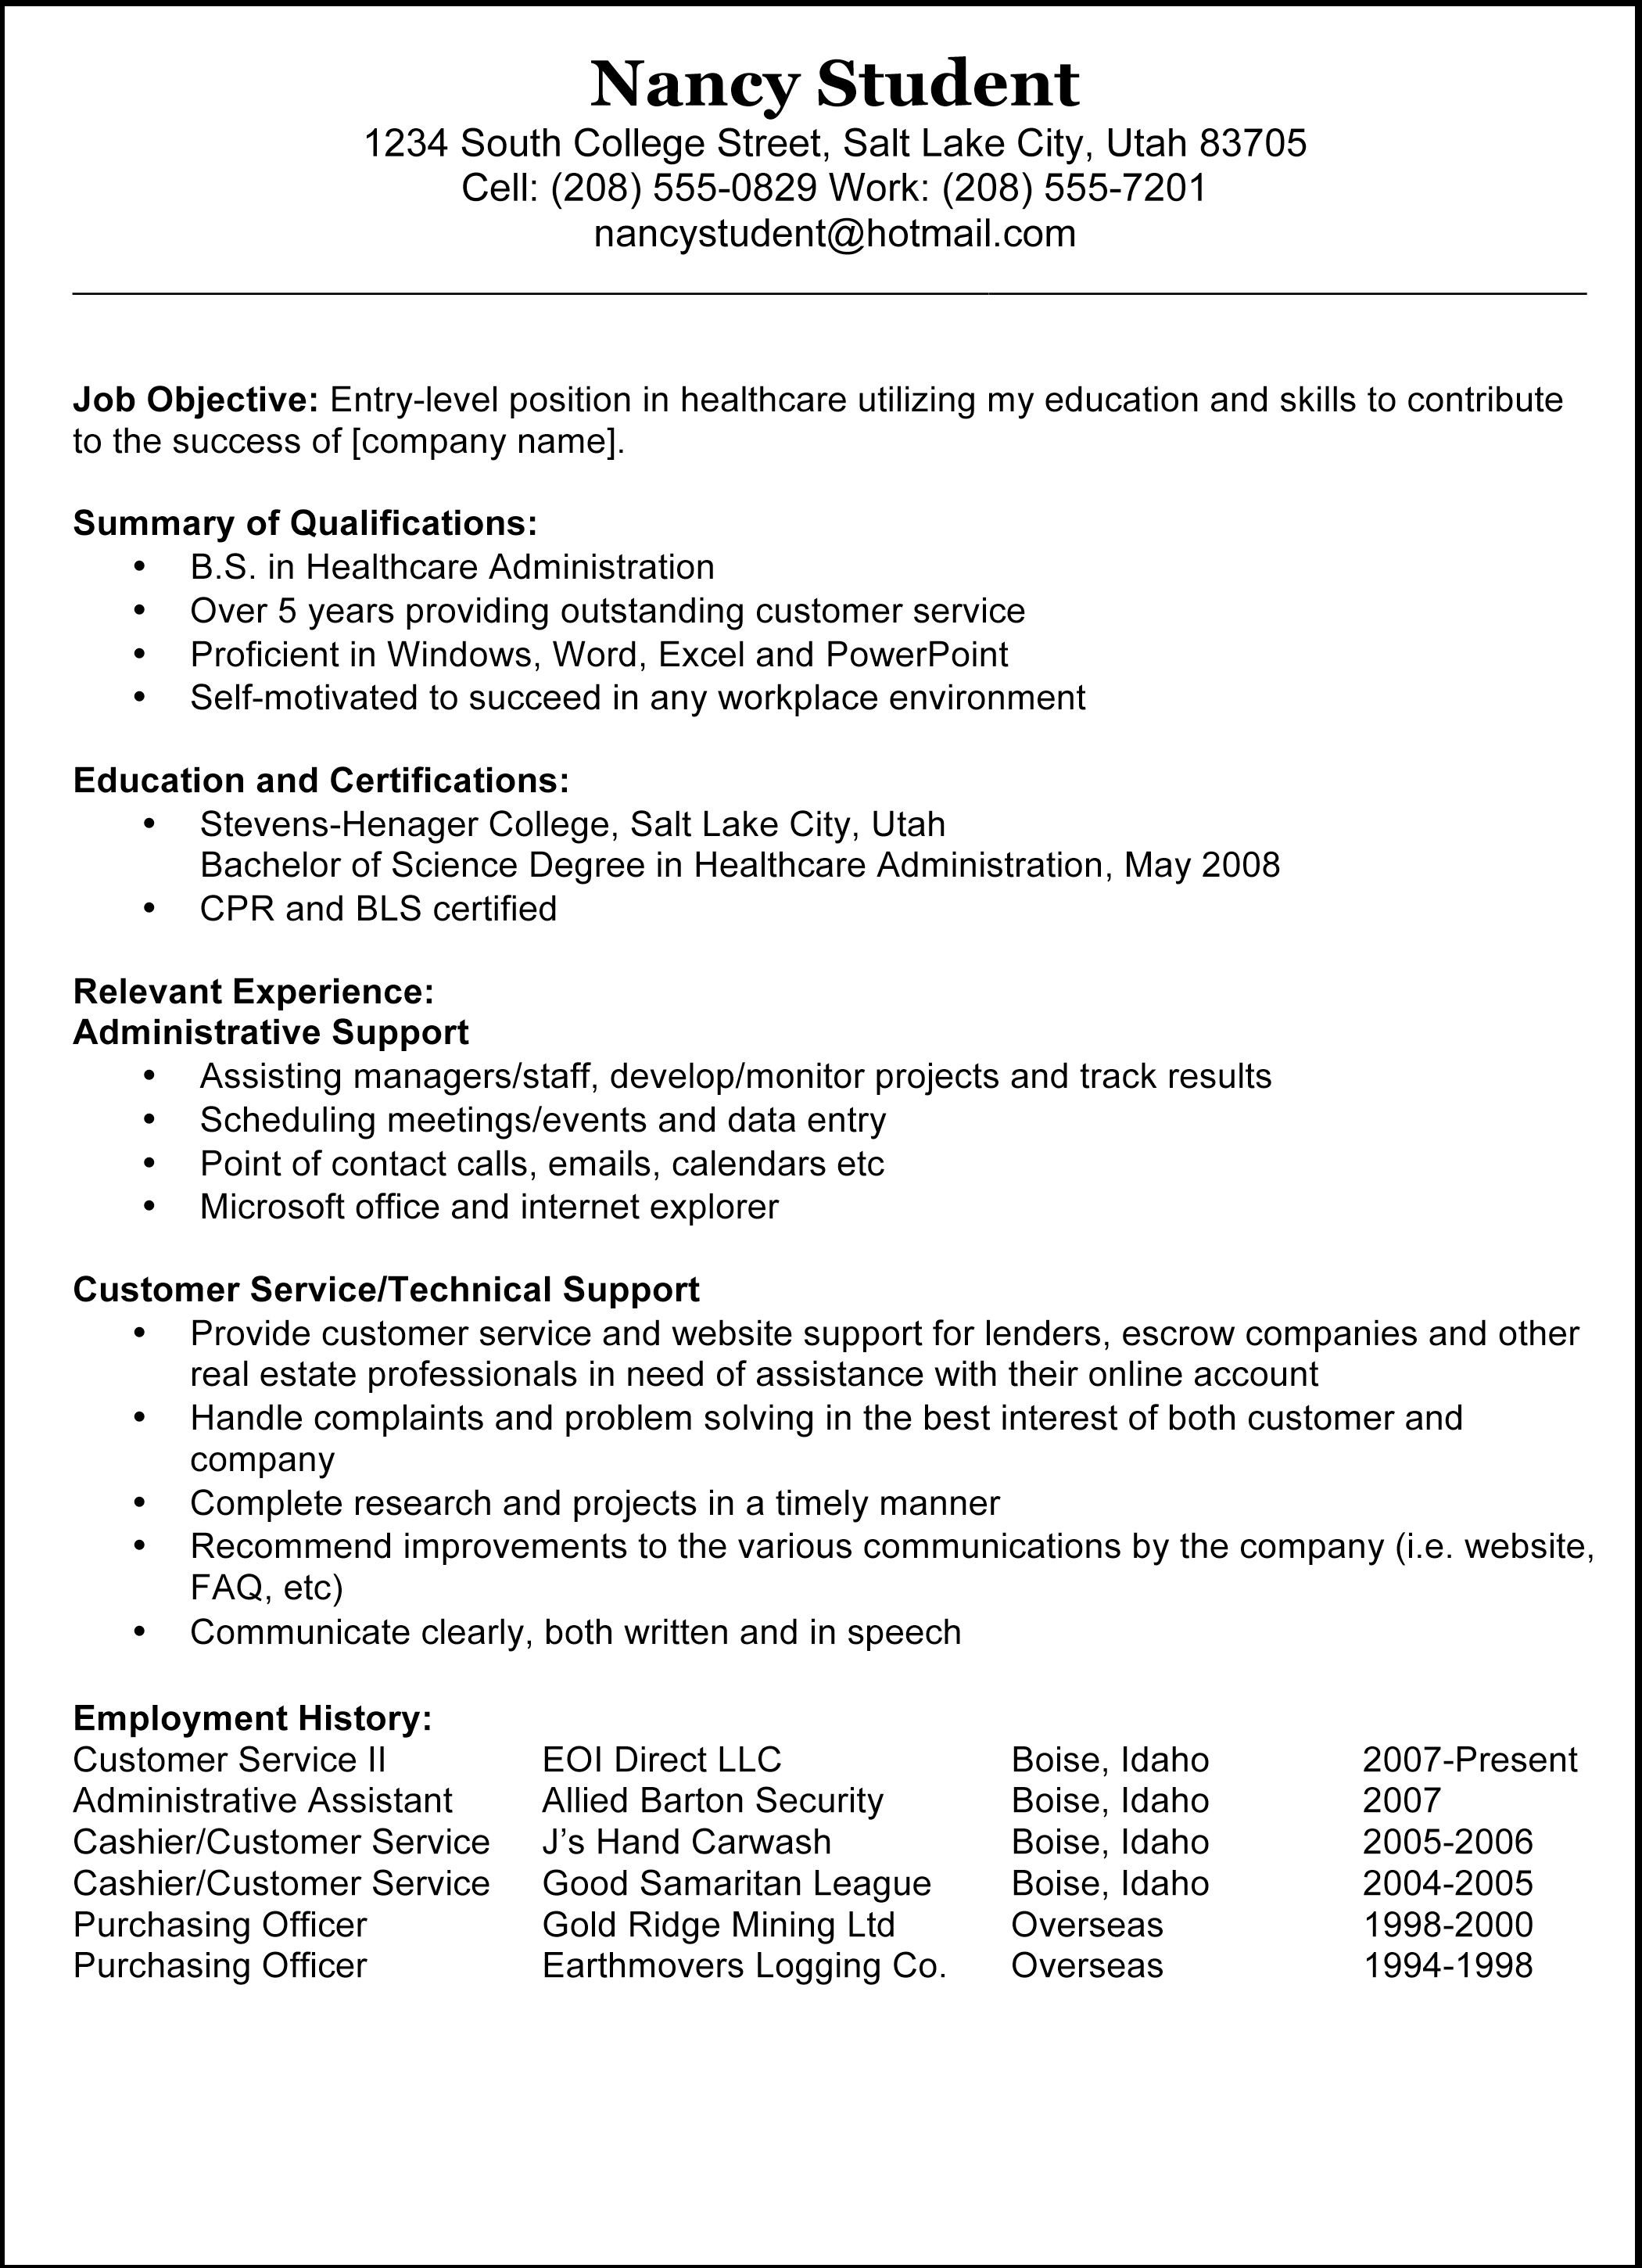 Sample Resume Templates Copy Of 2014 Resume Sample  Click On The Document For An Editable